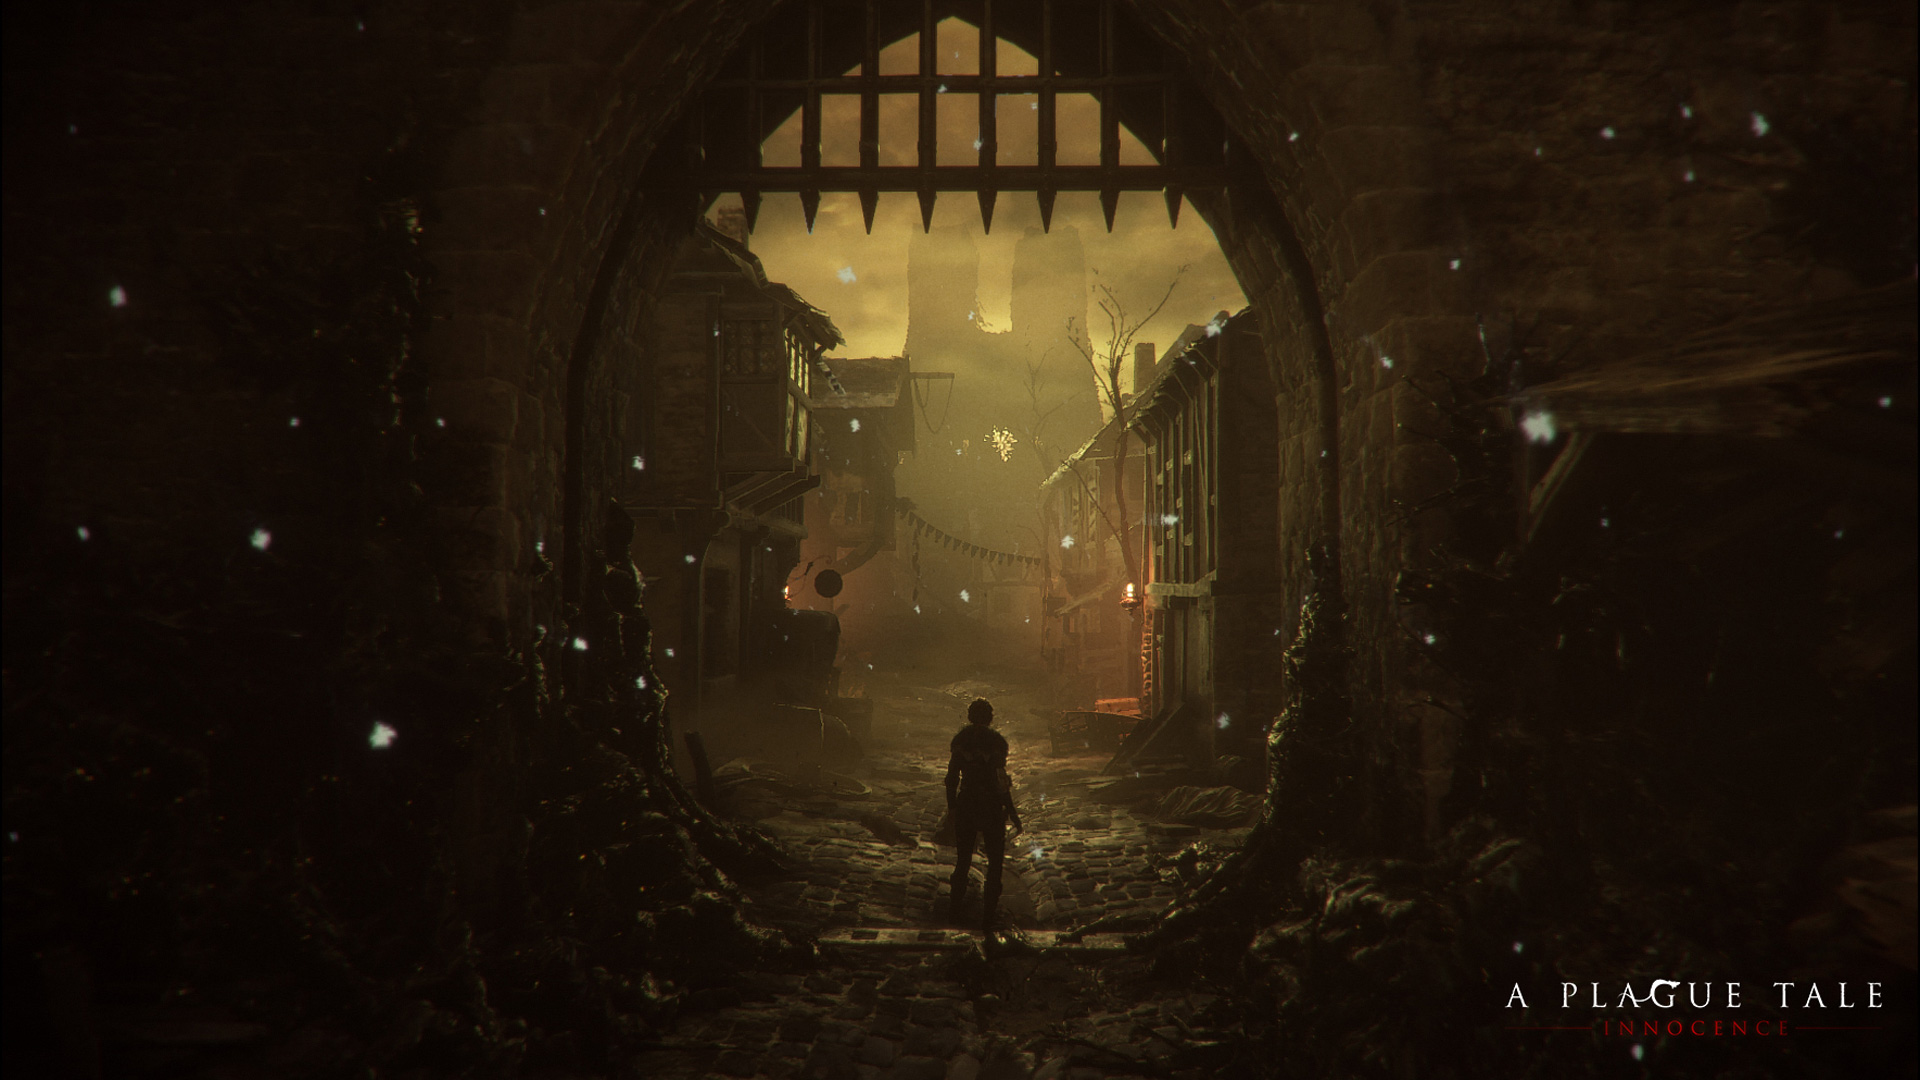 A_Plague_Tale-Innocence-Screenshot_18_logo.jpg